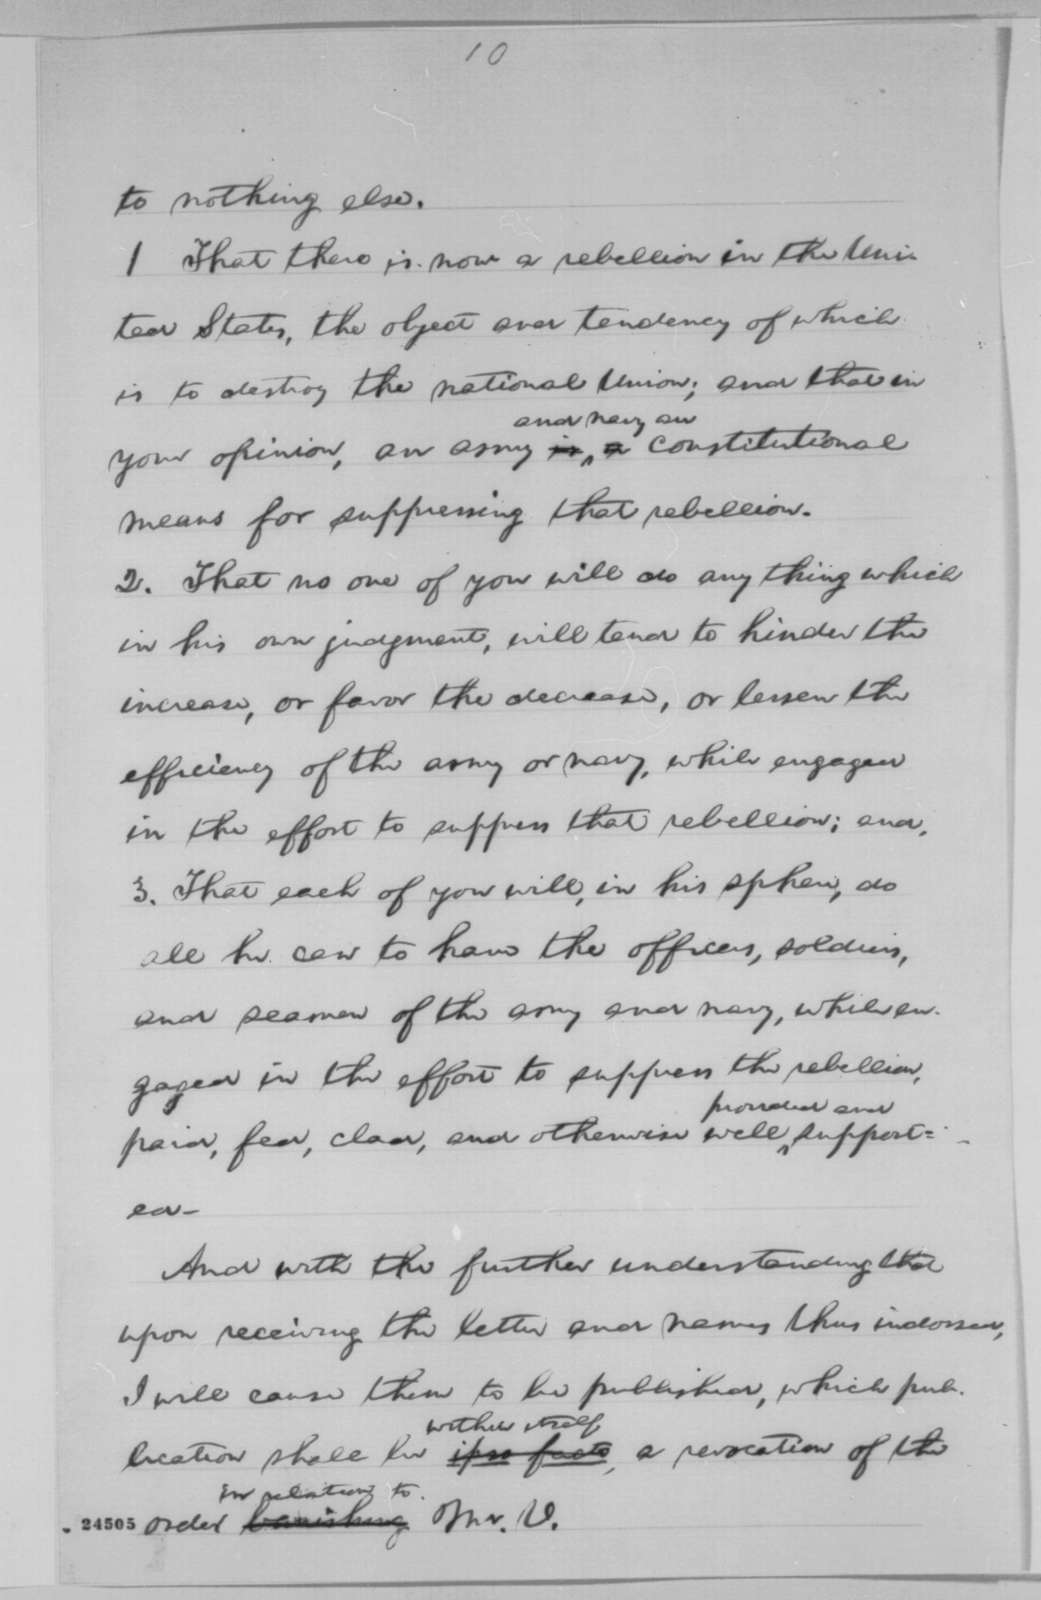 Abraham Lincoln to Matthew Birchard, et al., Monday, June 29, 1863  (Response to the resolutions of the Ohio Democratic Convention)